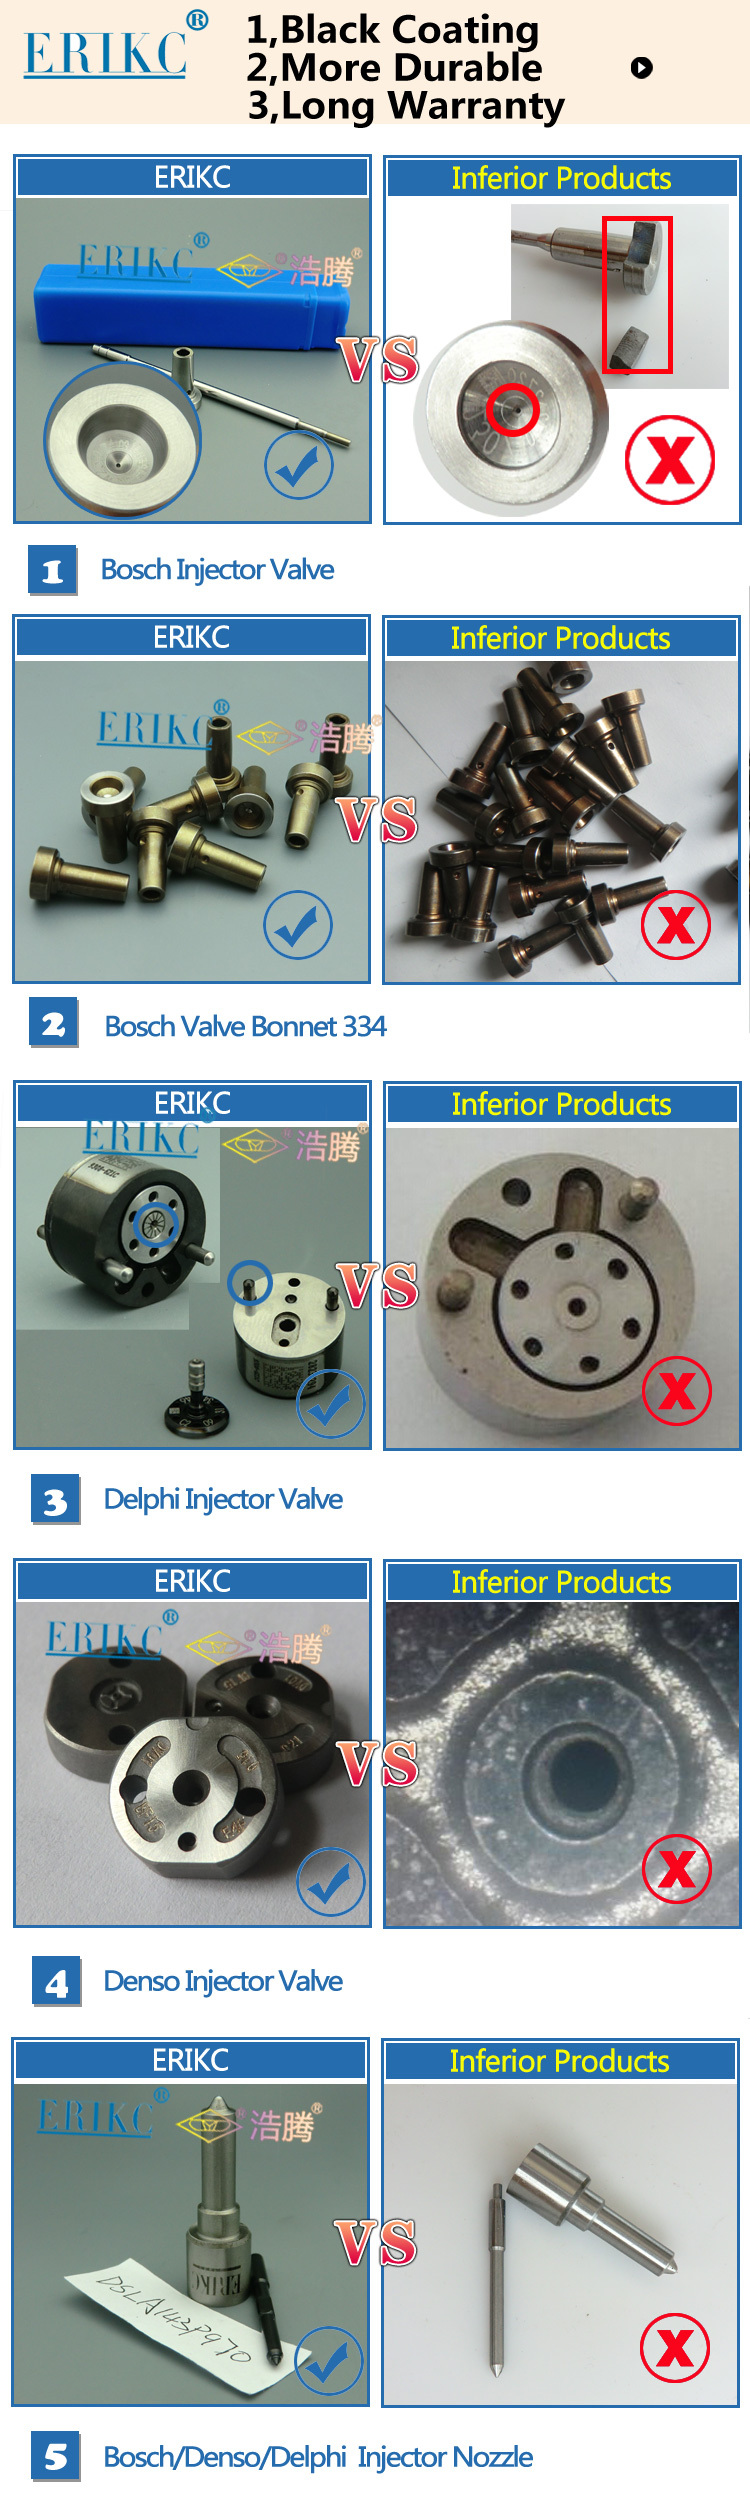 Denso injection valve control 095000-6240 valve for injector 16600MB40A and 16600-MB40A